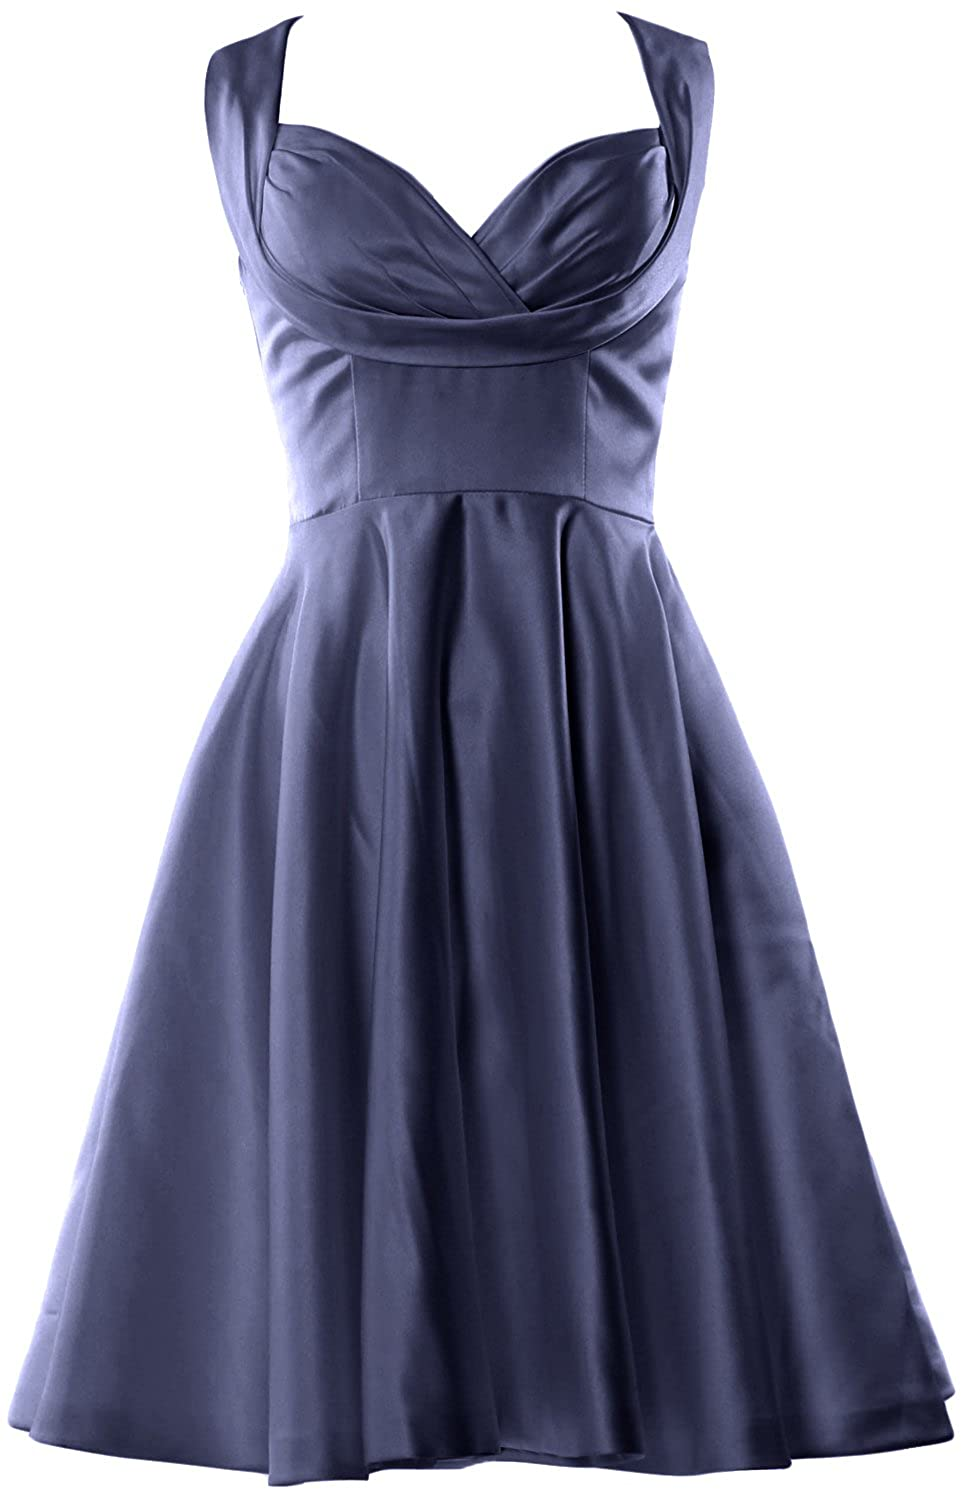 MACloth Women Straps Vintage Short Cocktail Party Dress Wedding Formal Gown